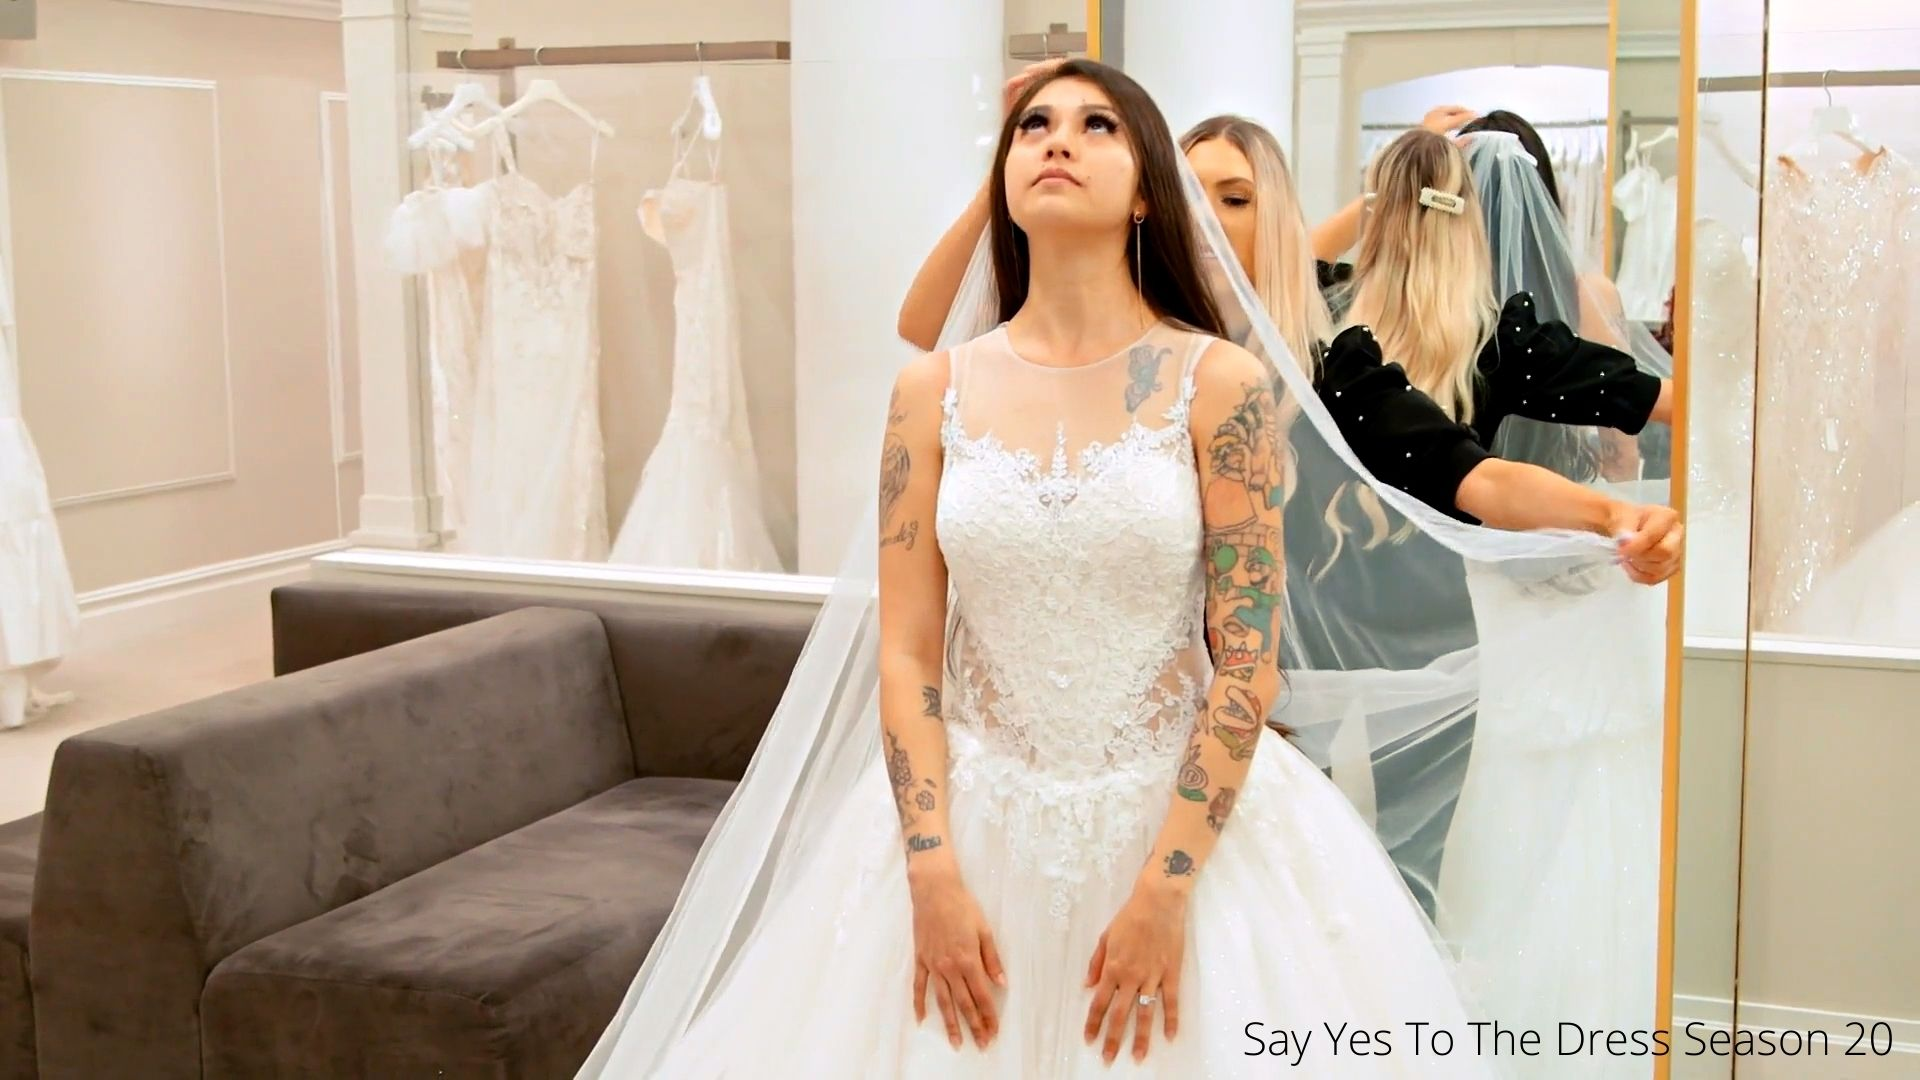 Say Yes To The Dress Season 20 Episode 12